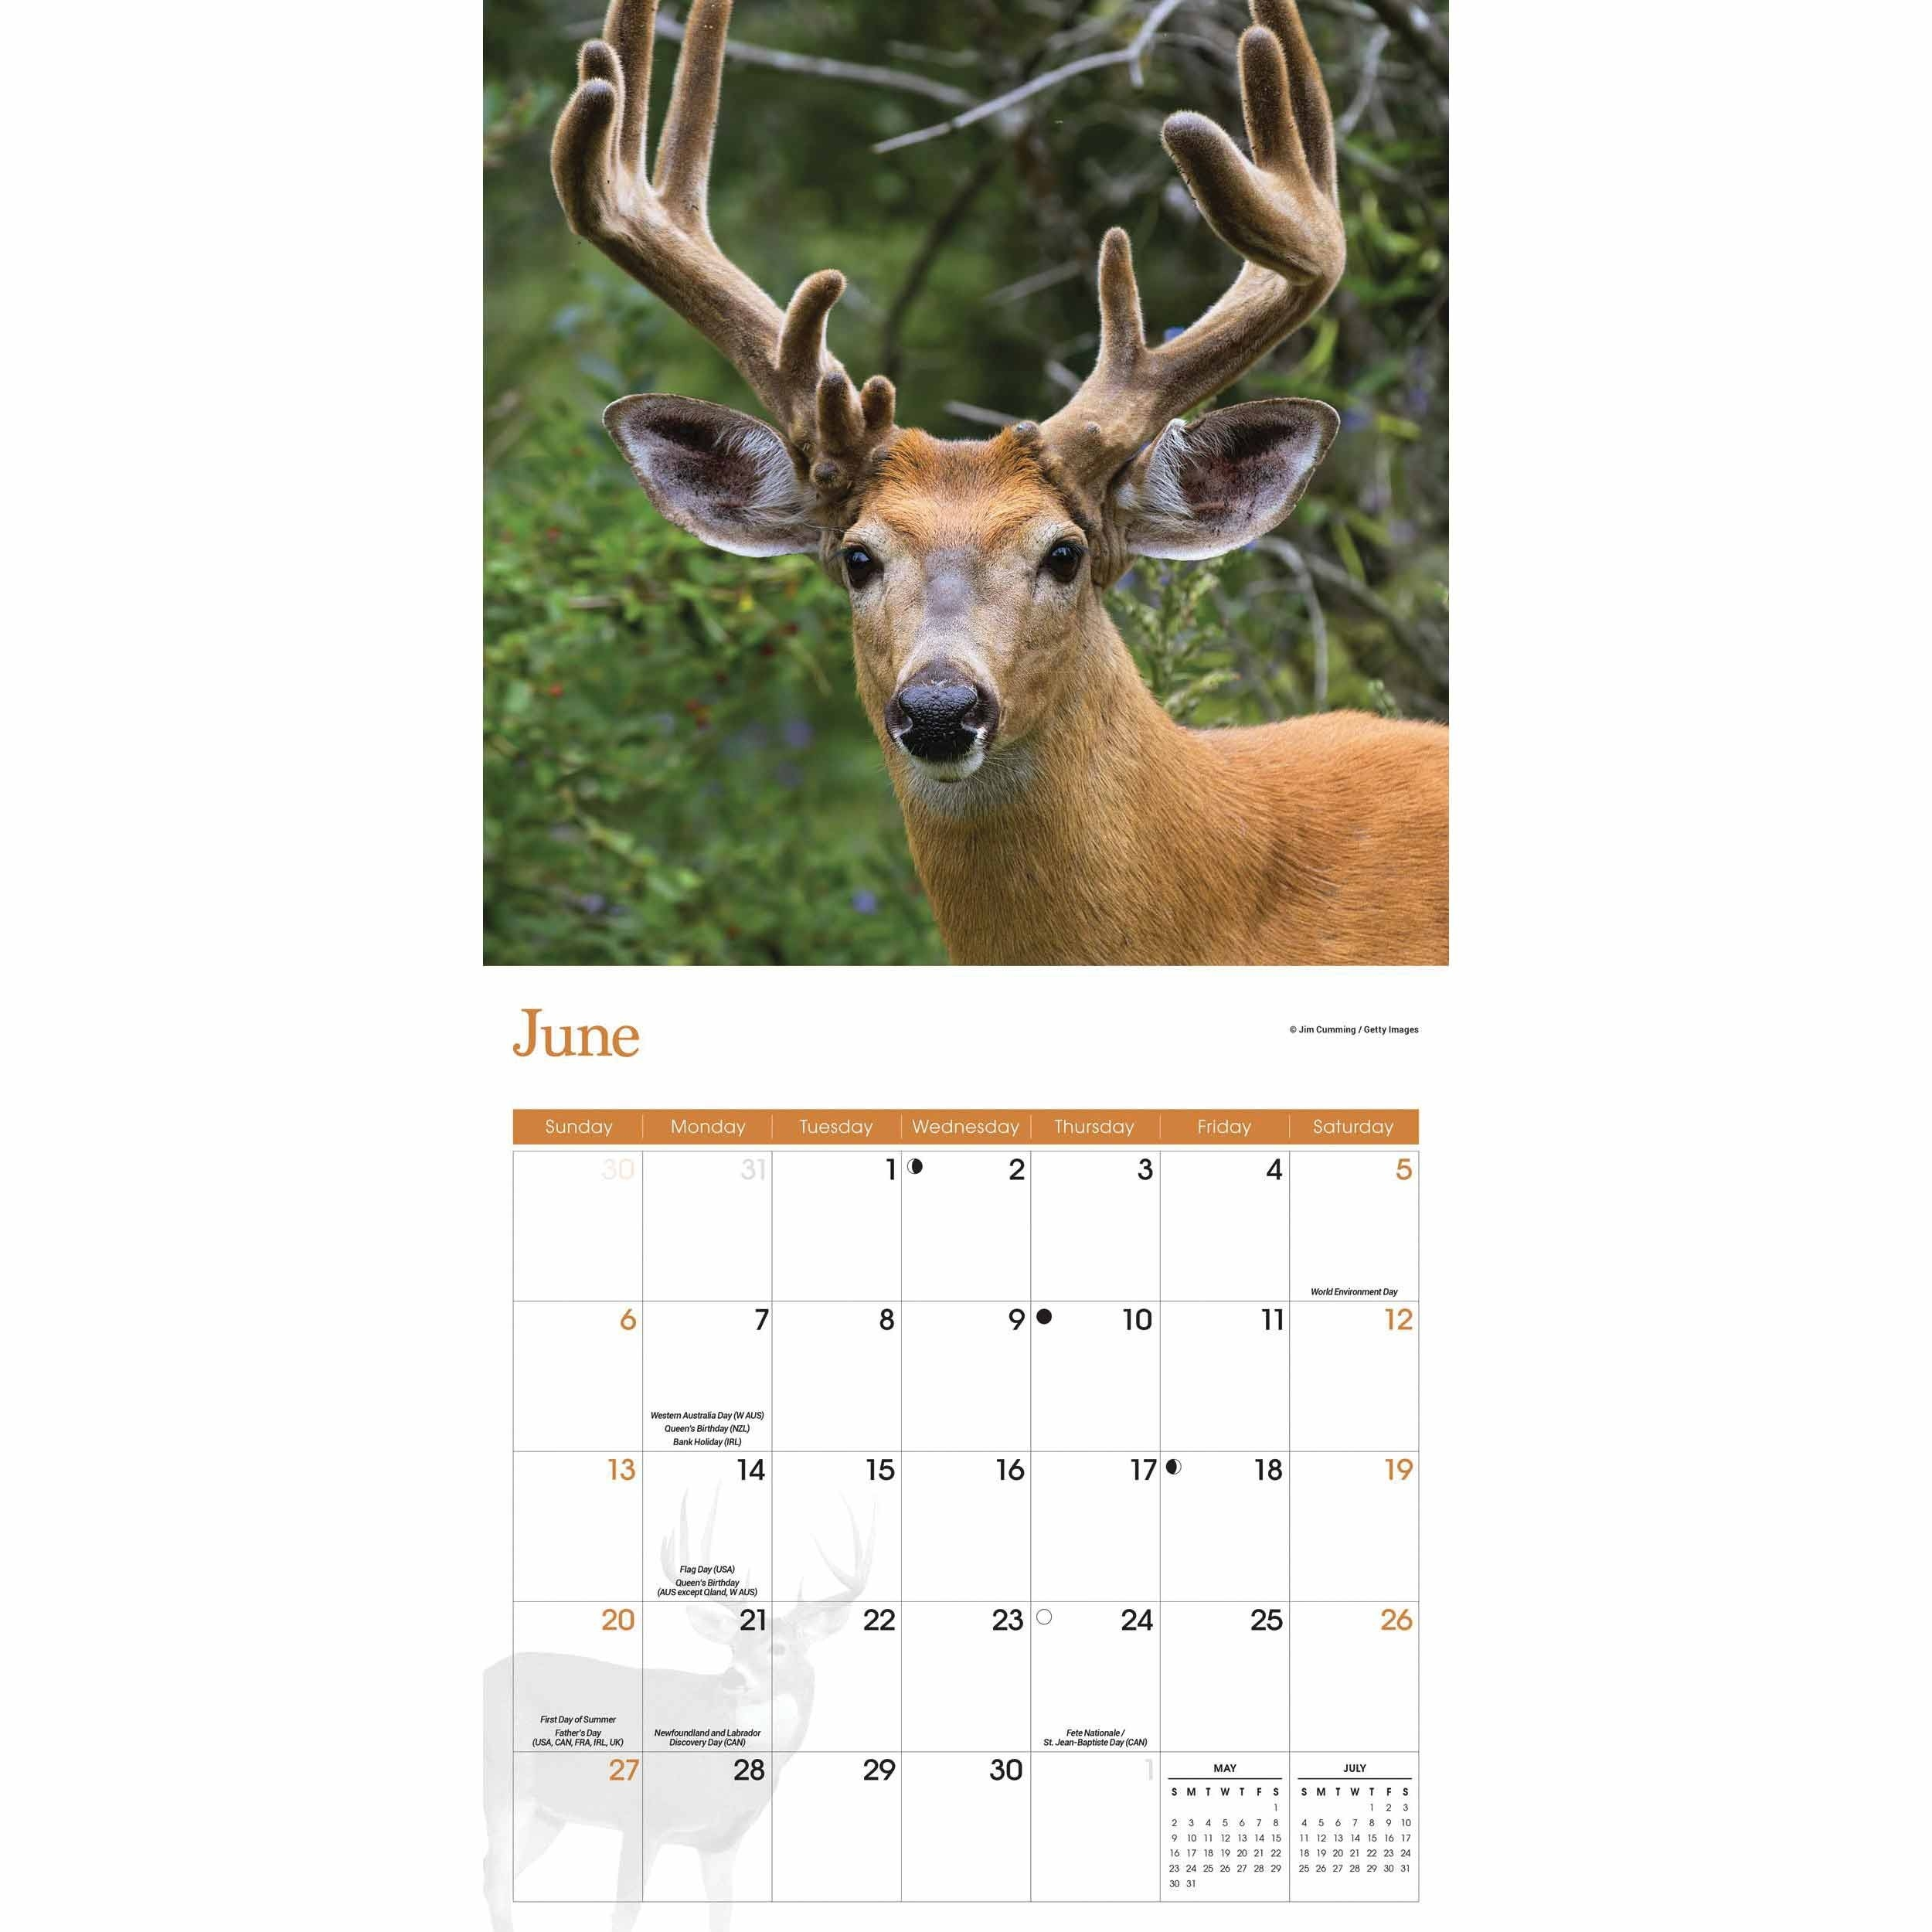 White-Tailed Deer Calendar 2021 At Calendar Club-2021 Deer And Deer Hunting Rut Calendar